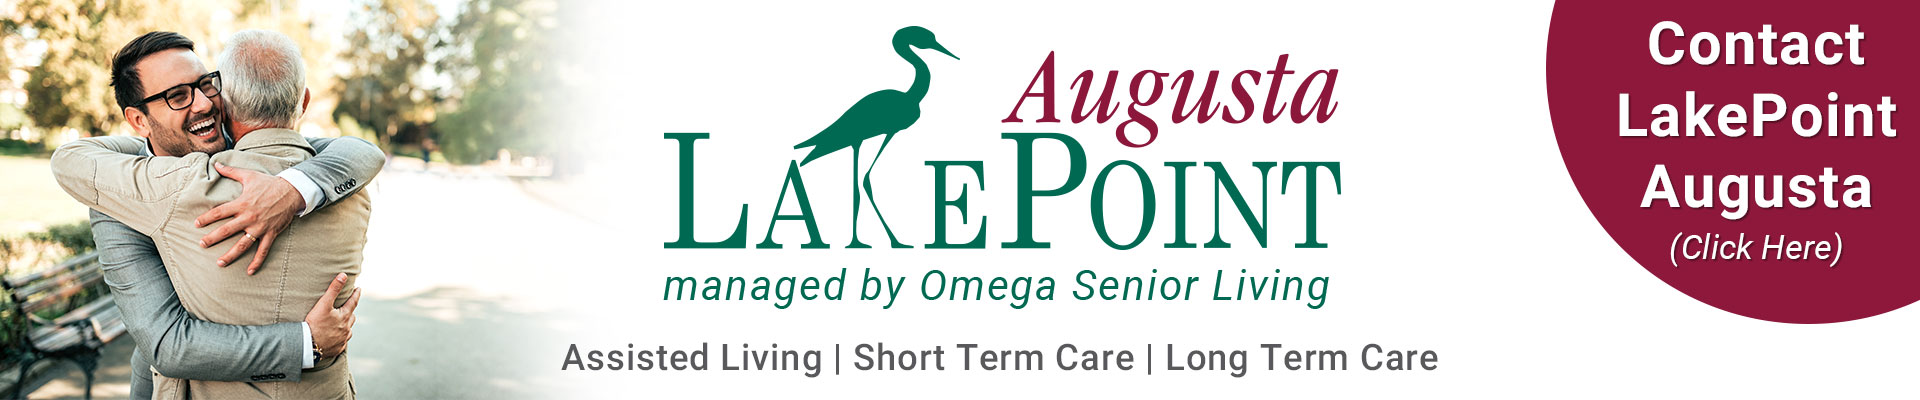 Contact LakePoint Augusta for Assisted Living, Short Term Care & Long Term Care needs.